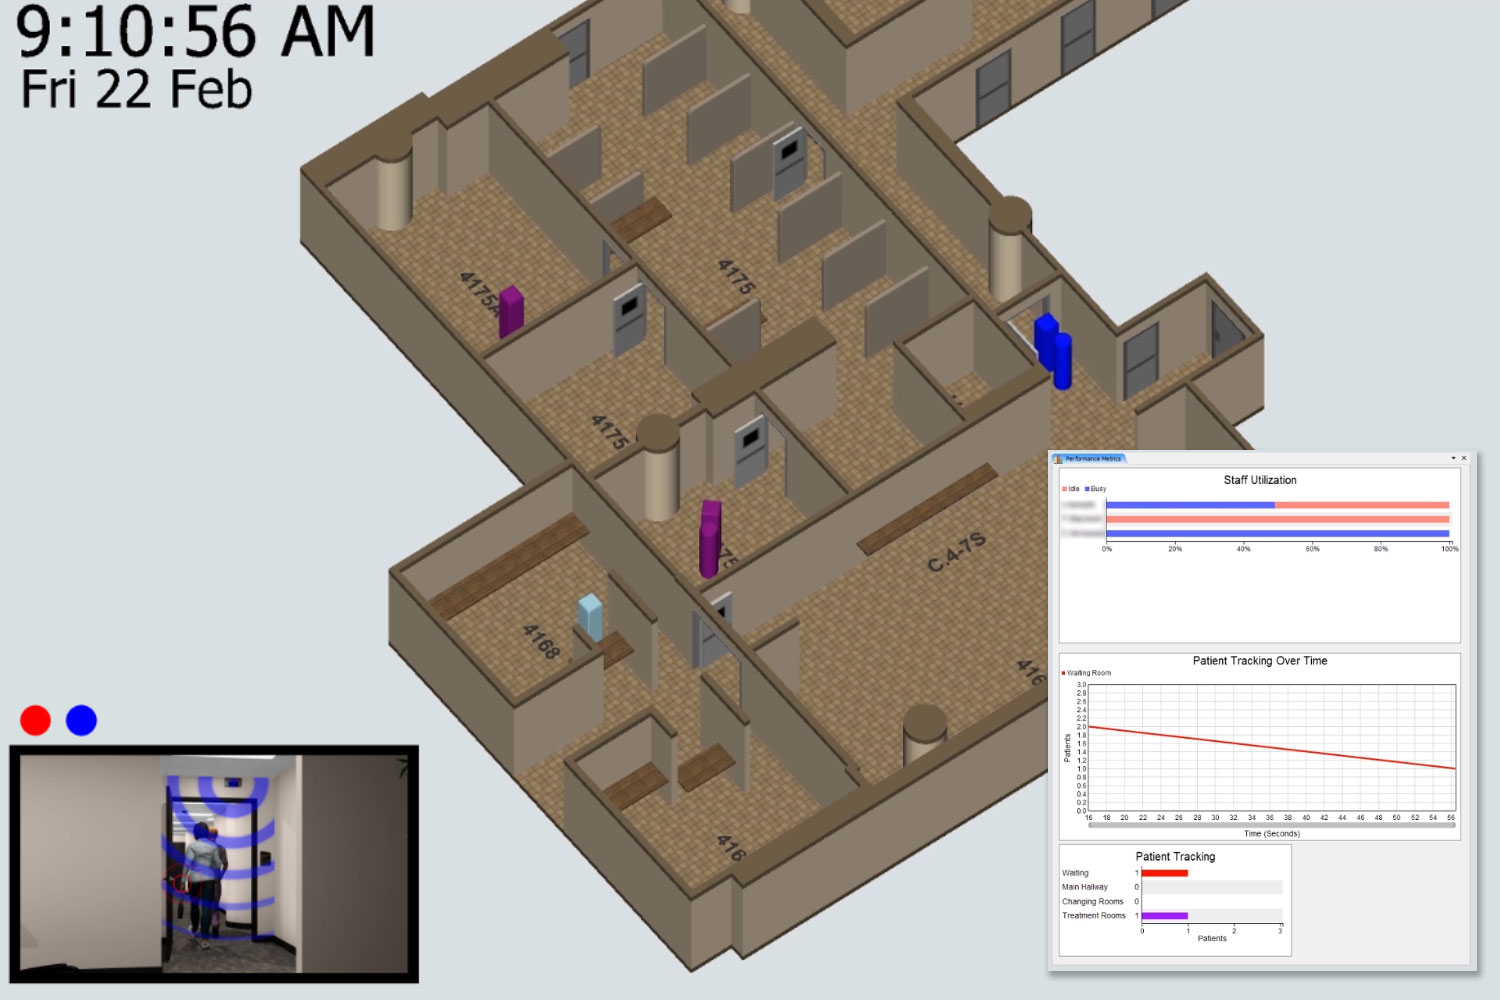 3d floorplan chart camera tracking person